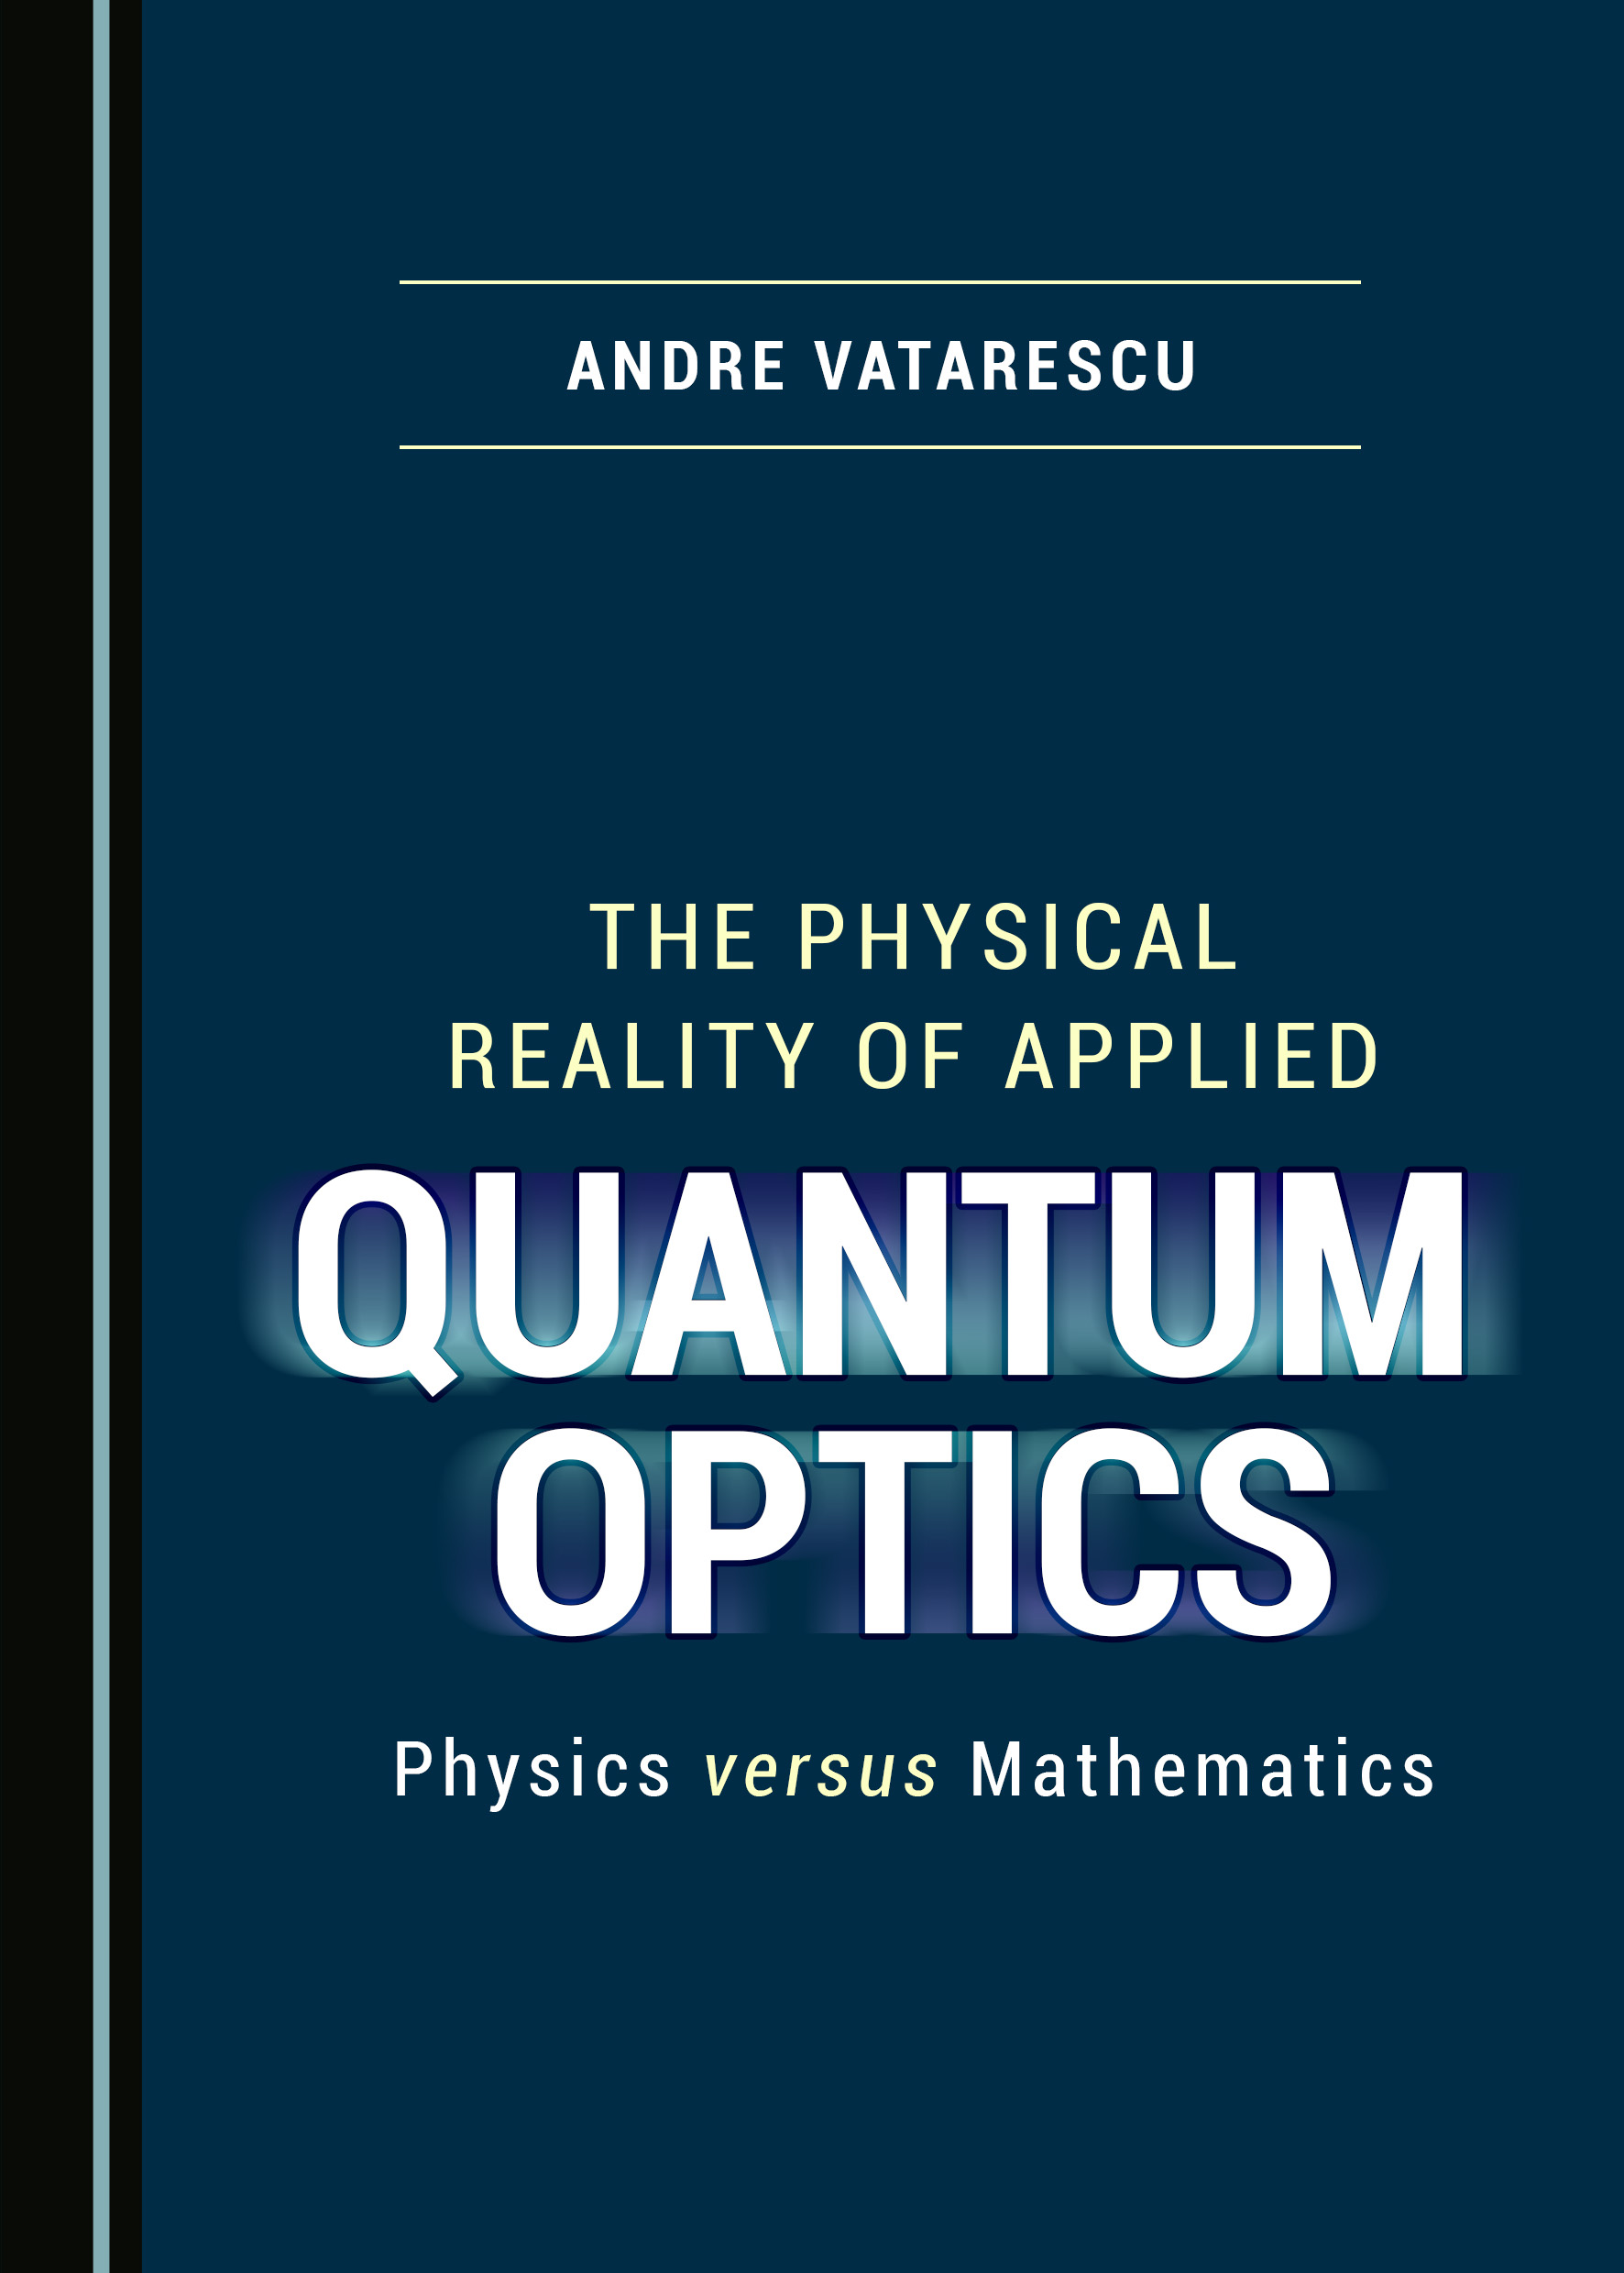 The Physical Reality of Applied Quantum Optics: Physics versus Mathematics